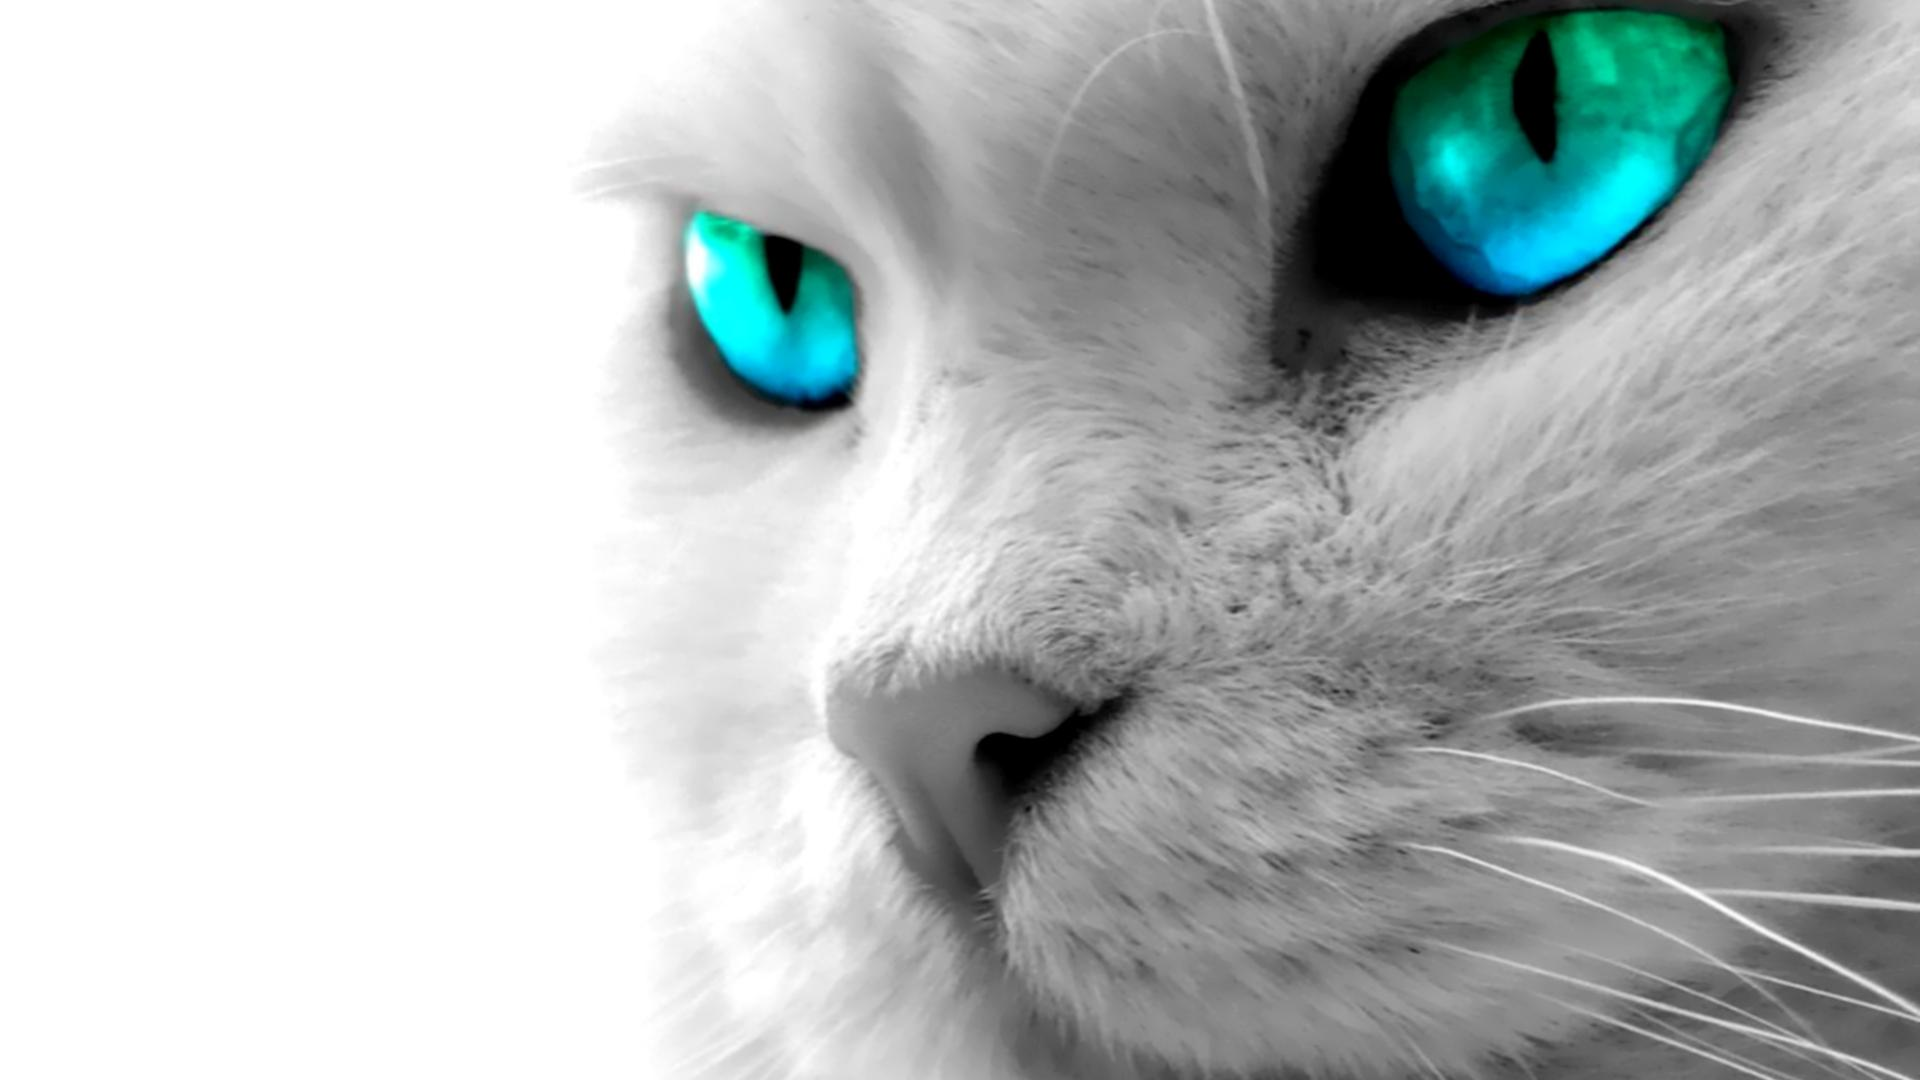 Free Download Cat Blue Eyes High Definition Wallpaper 1920x1080 Full Hd Wallpapers 1920x1080 For Your Desktop Mobile Tablet Explore 40 Cool Cat Hd Wallpaper Awesome Cat Wallpaper Hd Widescreen Cat Wallpaper